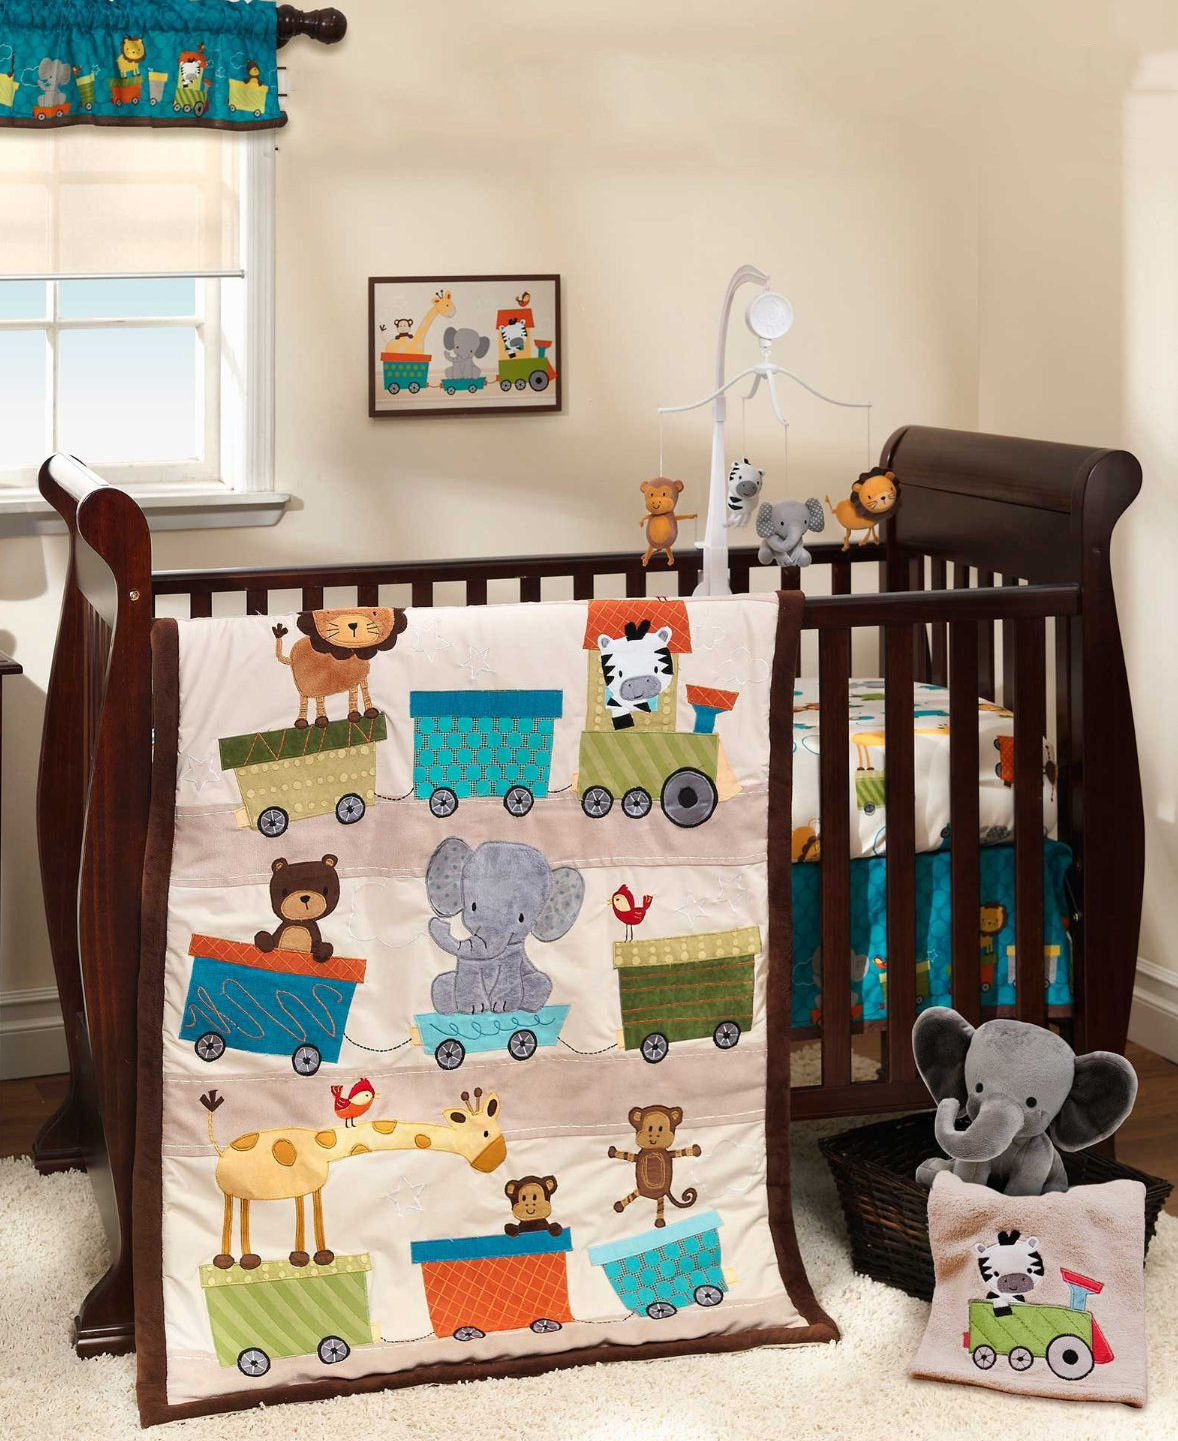 Thomas the Train Baby Nursery Theme Bedding and Decor